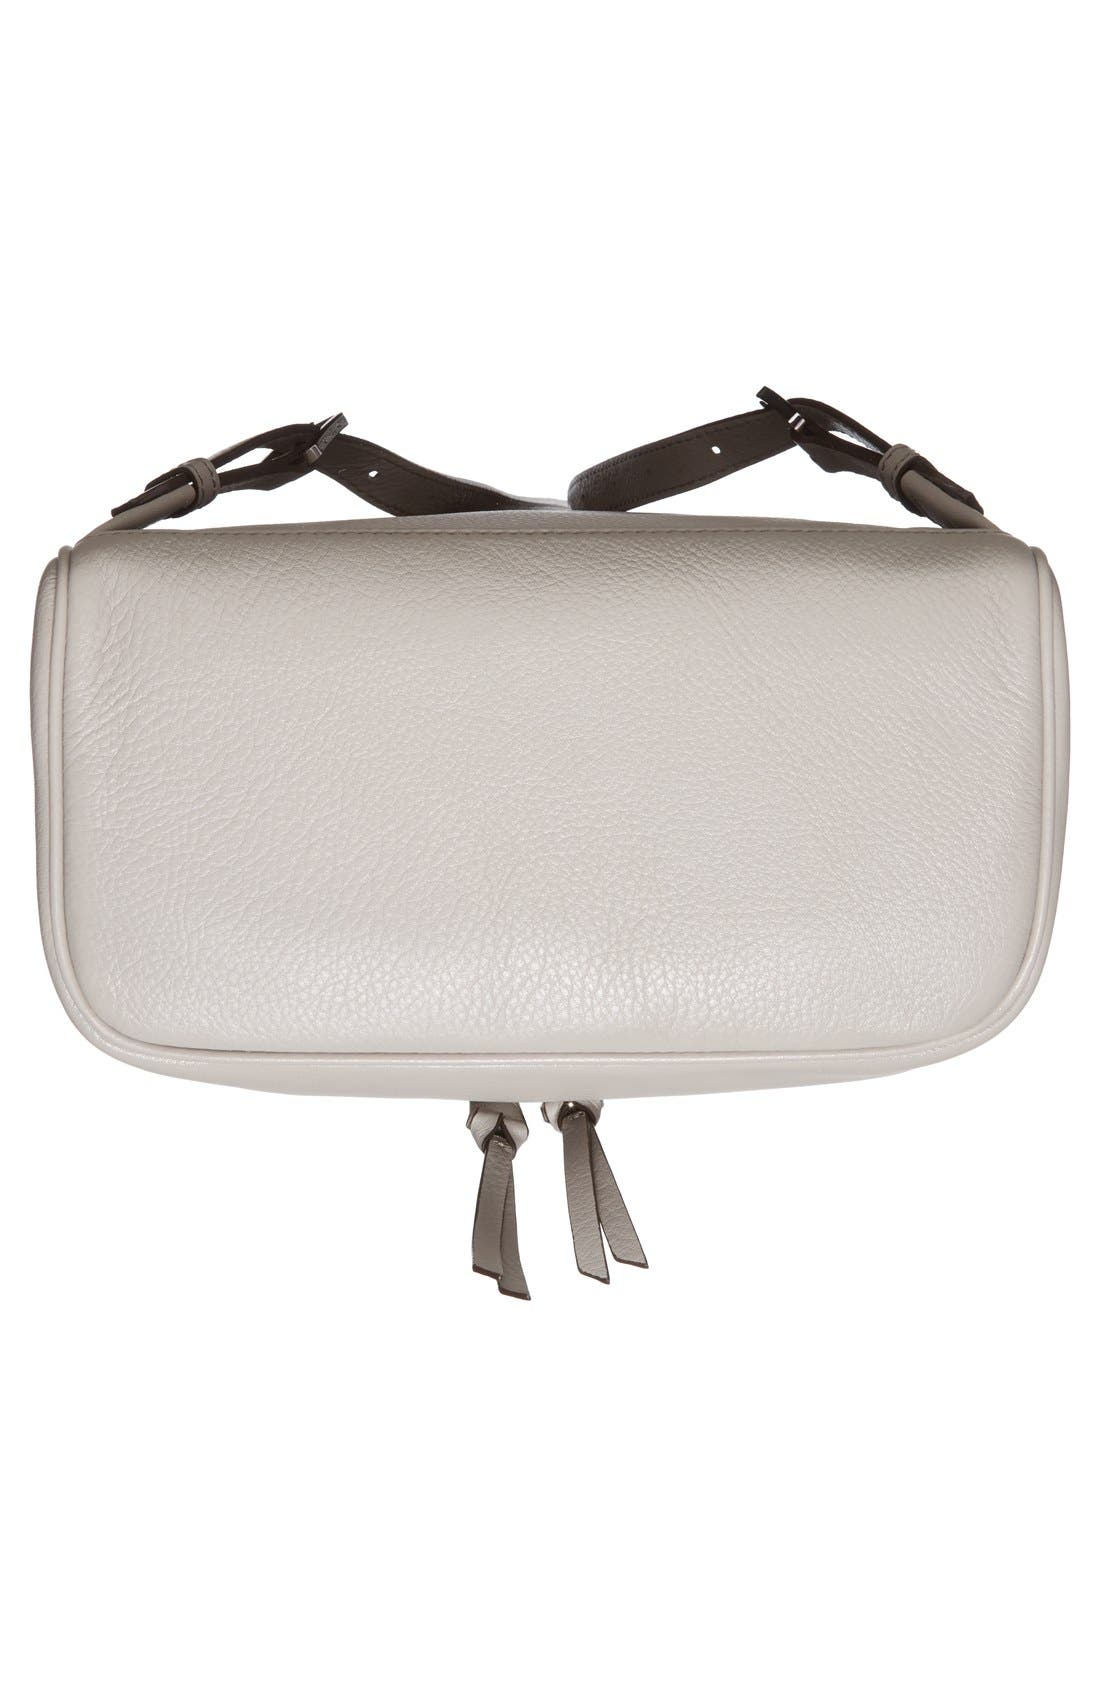 'Small Rhea Zip' Leather Backpack,                             Alternate thumbnail 6, color,                             Pearl Grey/ Silver